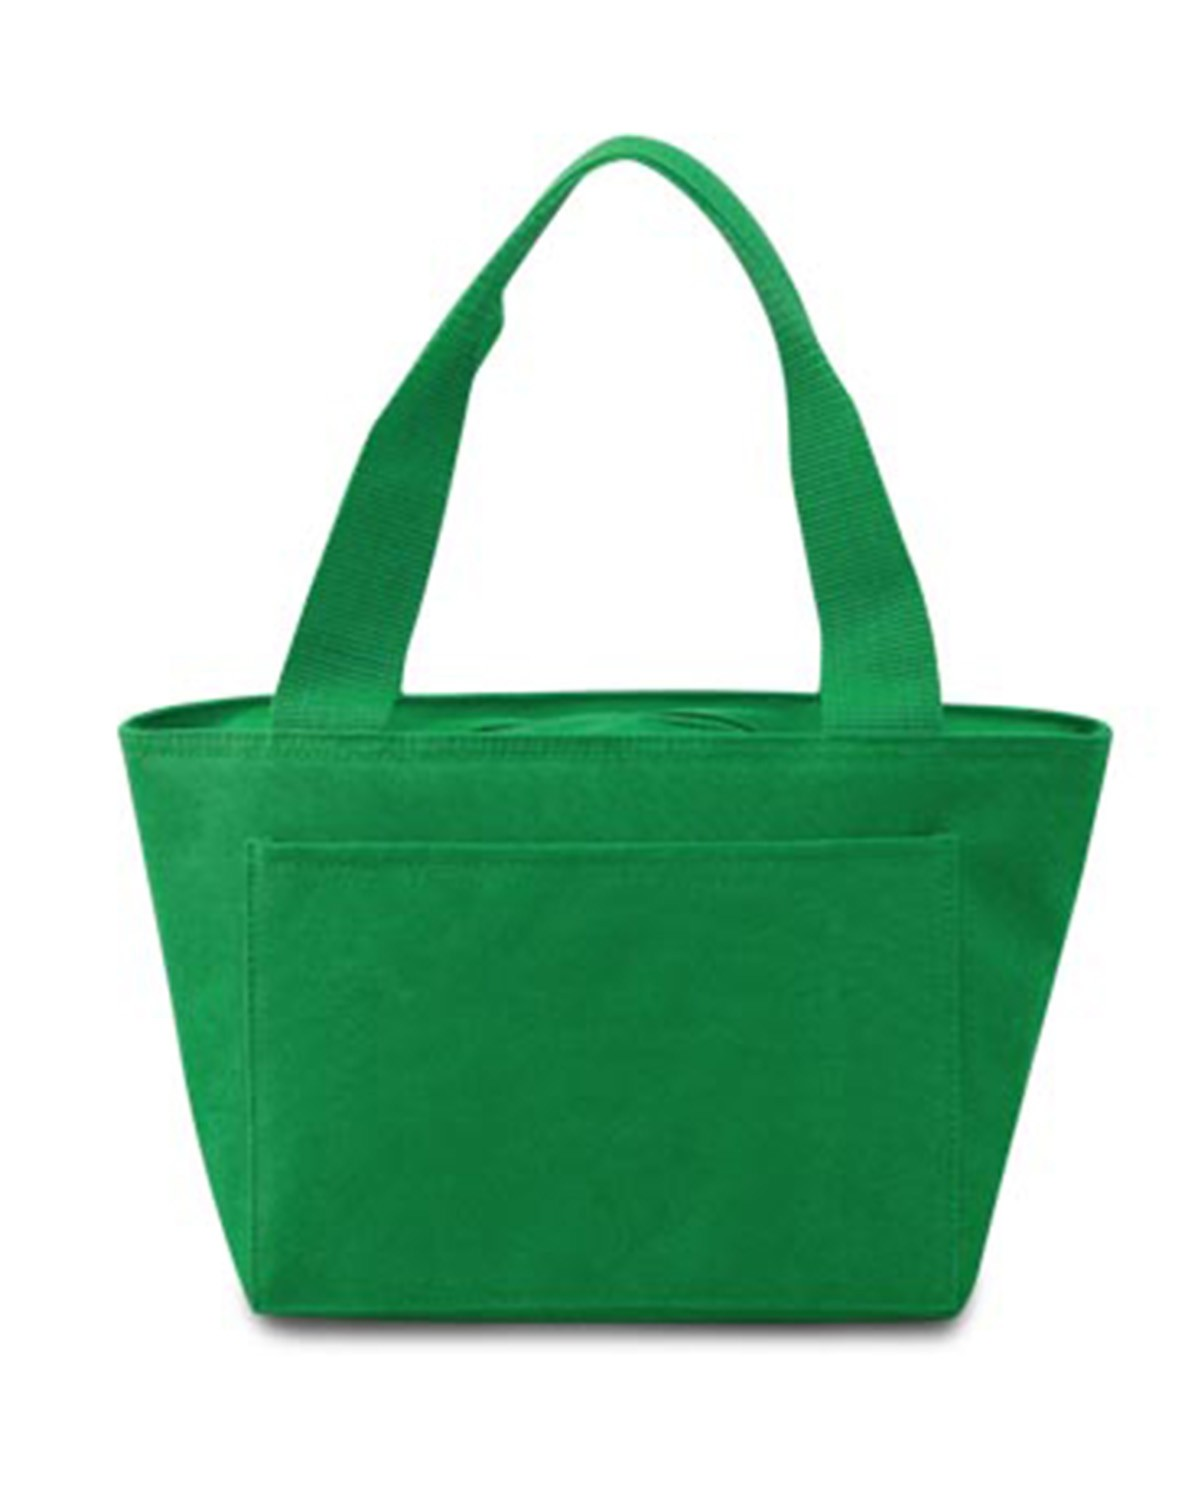 8808 Liberty Bags KELLY GREEN